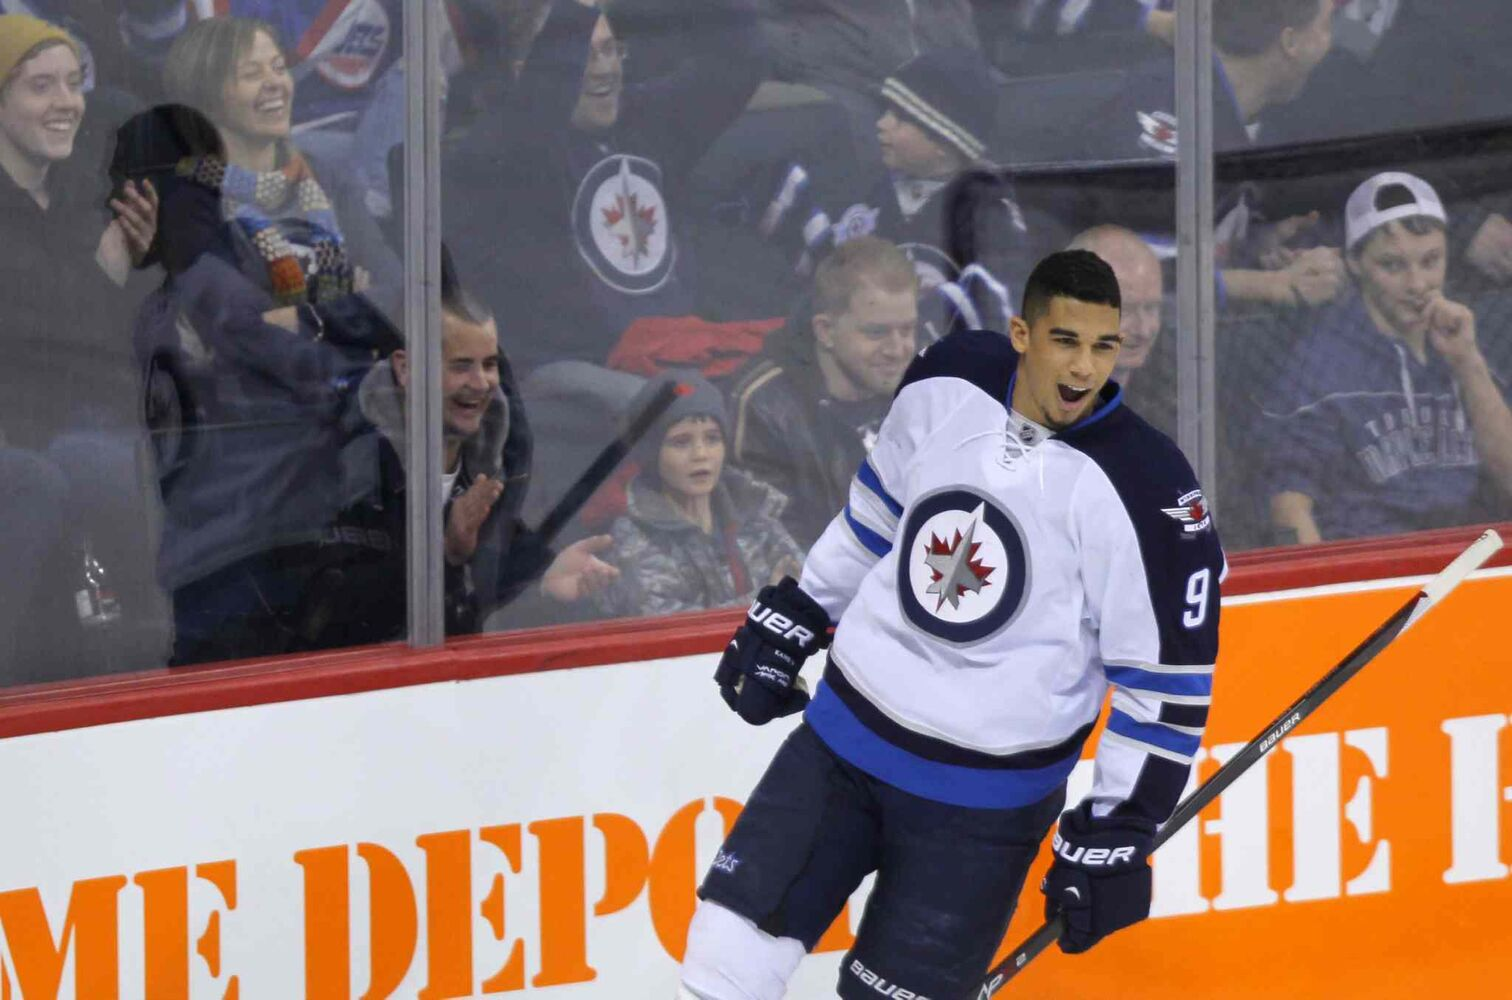 Evander Kane reacts after scoring on Al Montoya. (Boris Minkevich / Winnipeg Free Press)